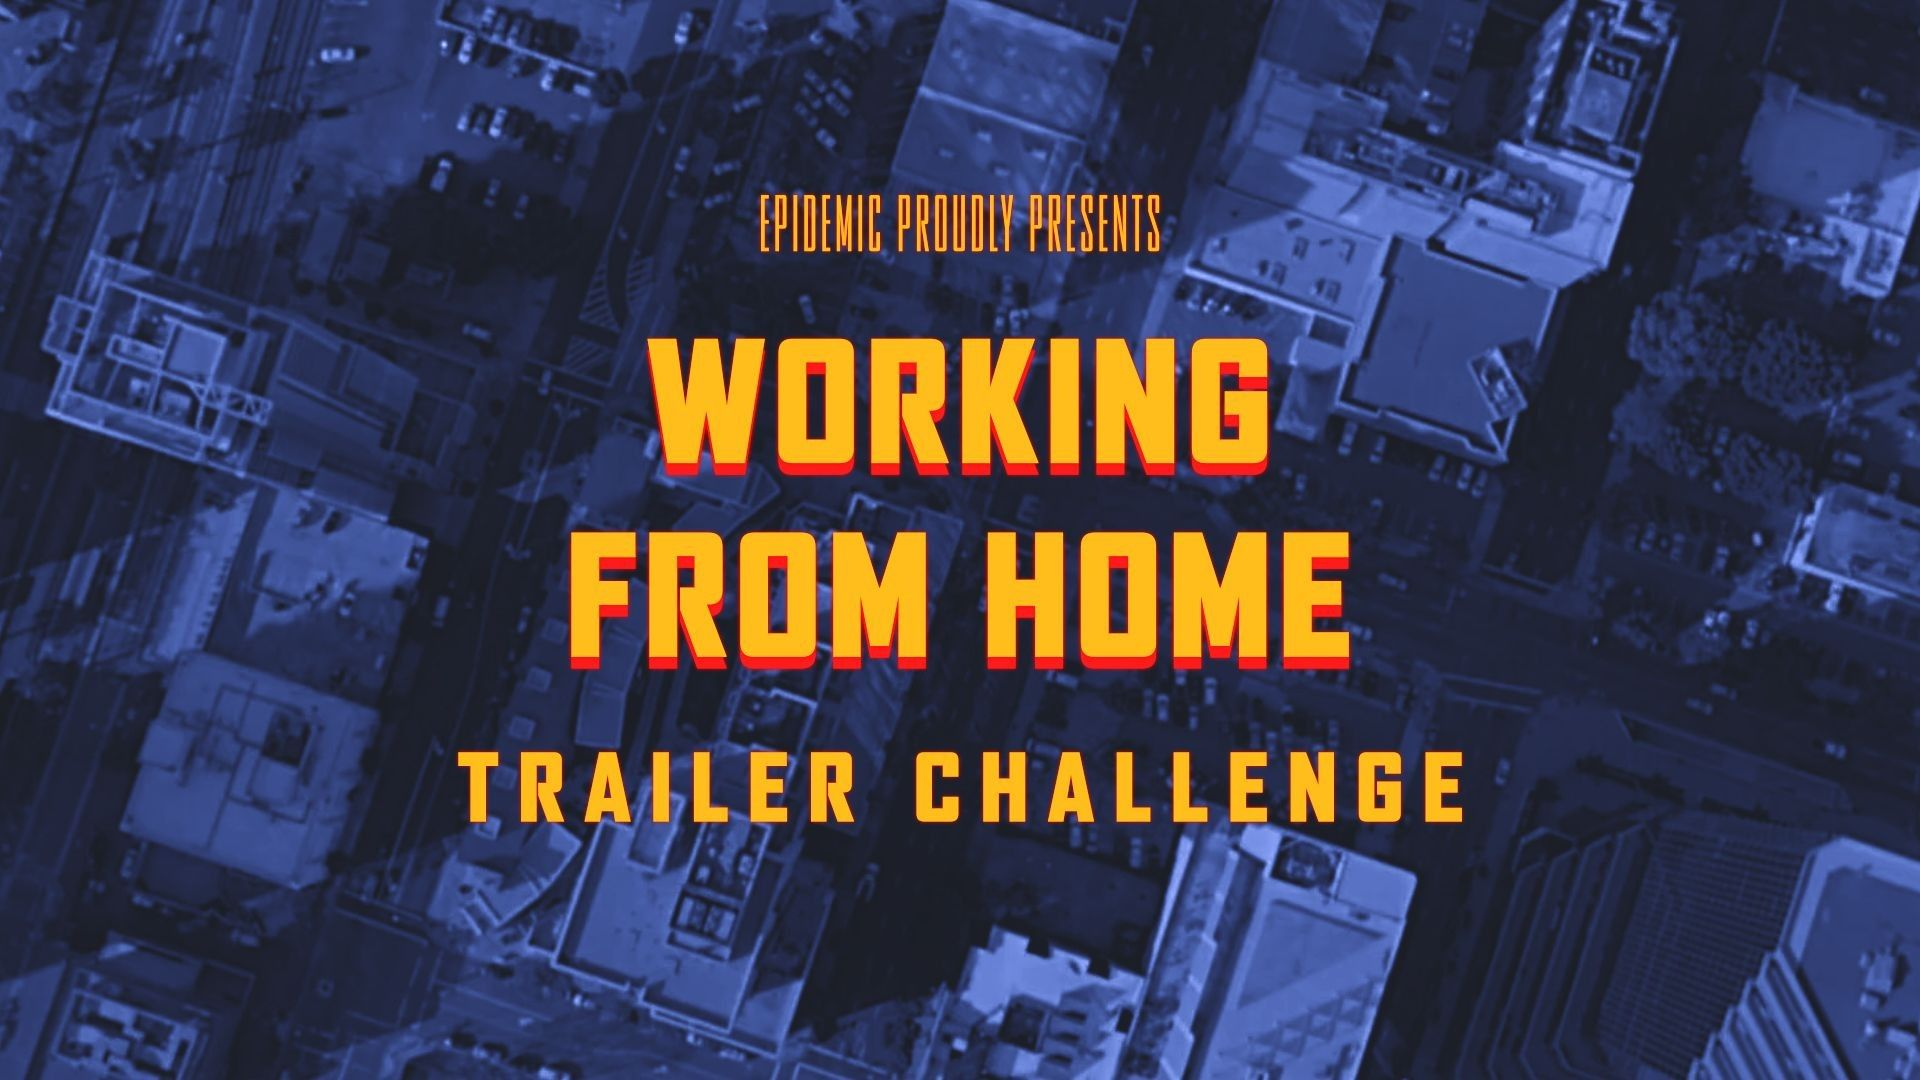 Make A Smashing Movie Trailer – Win $500 And A Yearly Epidemic Subscription!